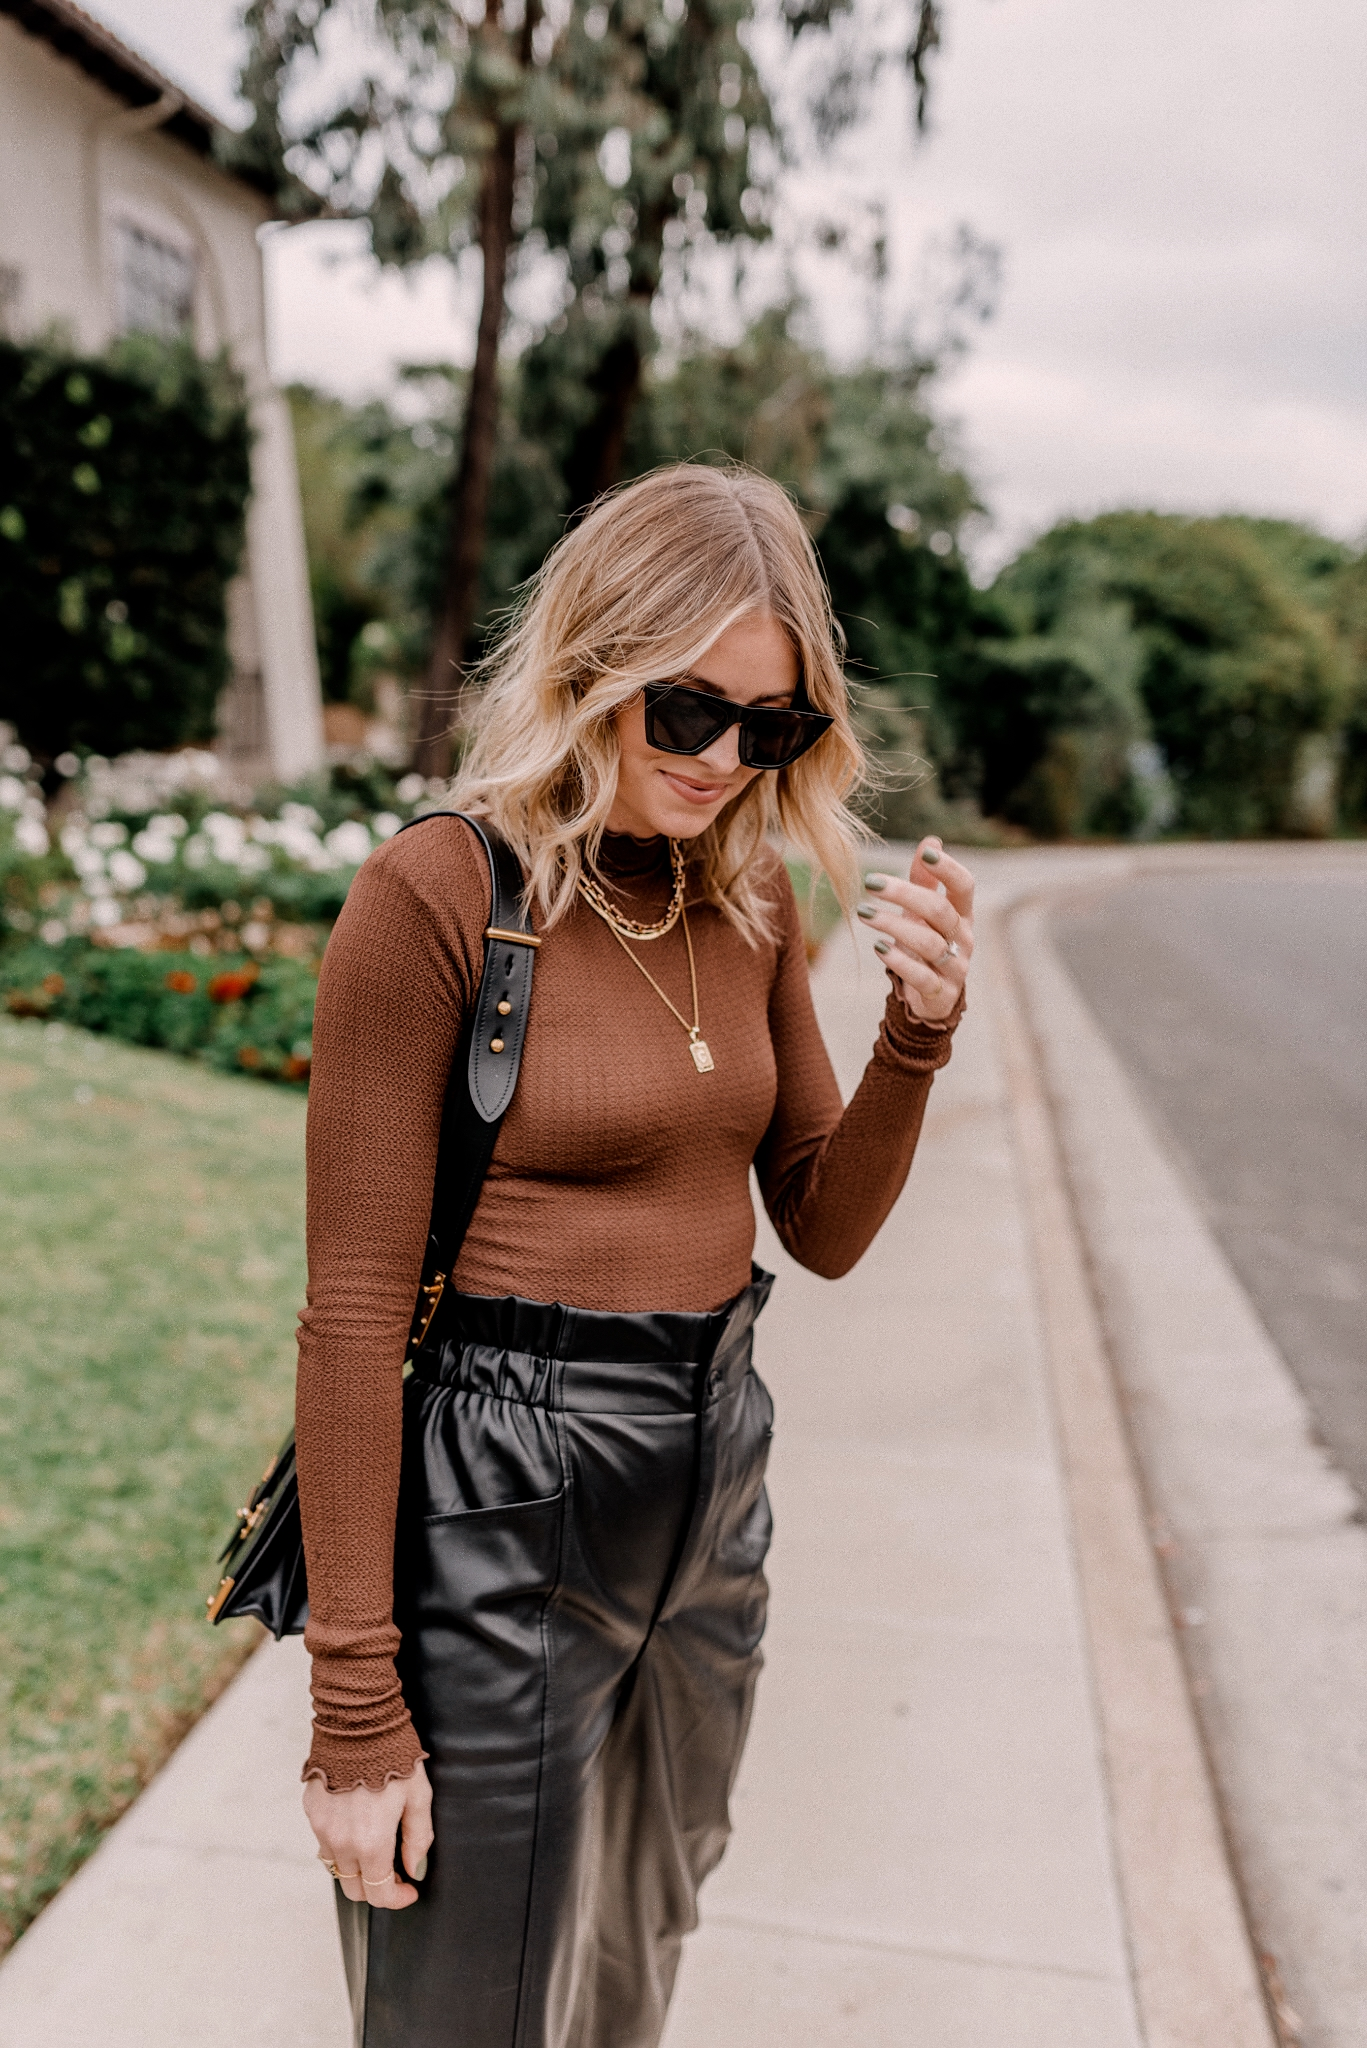 Mock Neck tops and Sweaters |Mock Neck Tops by popular San Diego fashion blog, Navy Grace: image of a woman wearing a long sleeve mock neck top, paper bag faux leather pants, black frame sunglasses, and black loafer slides.